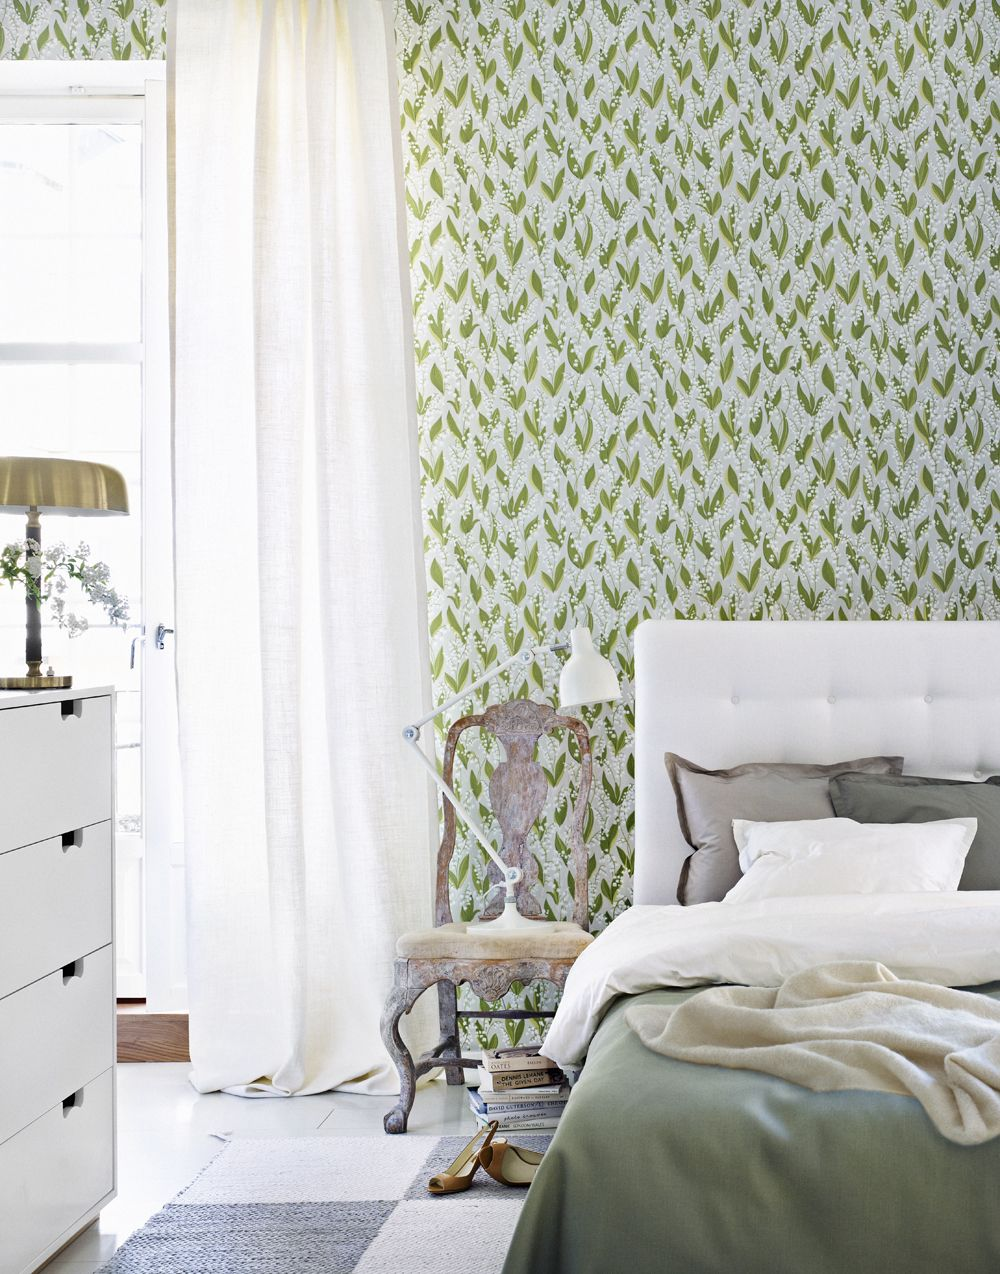 lily of the valley wallpaper from Sandberg. Move over, Farrow & Ball. Brace yourself, @Anna Provini Williamson.